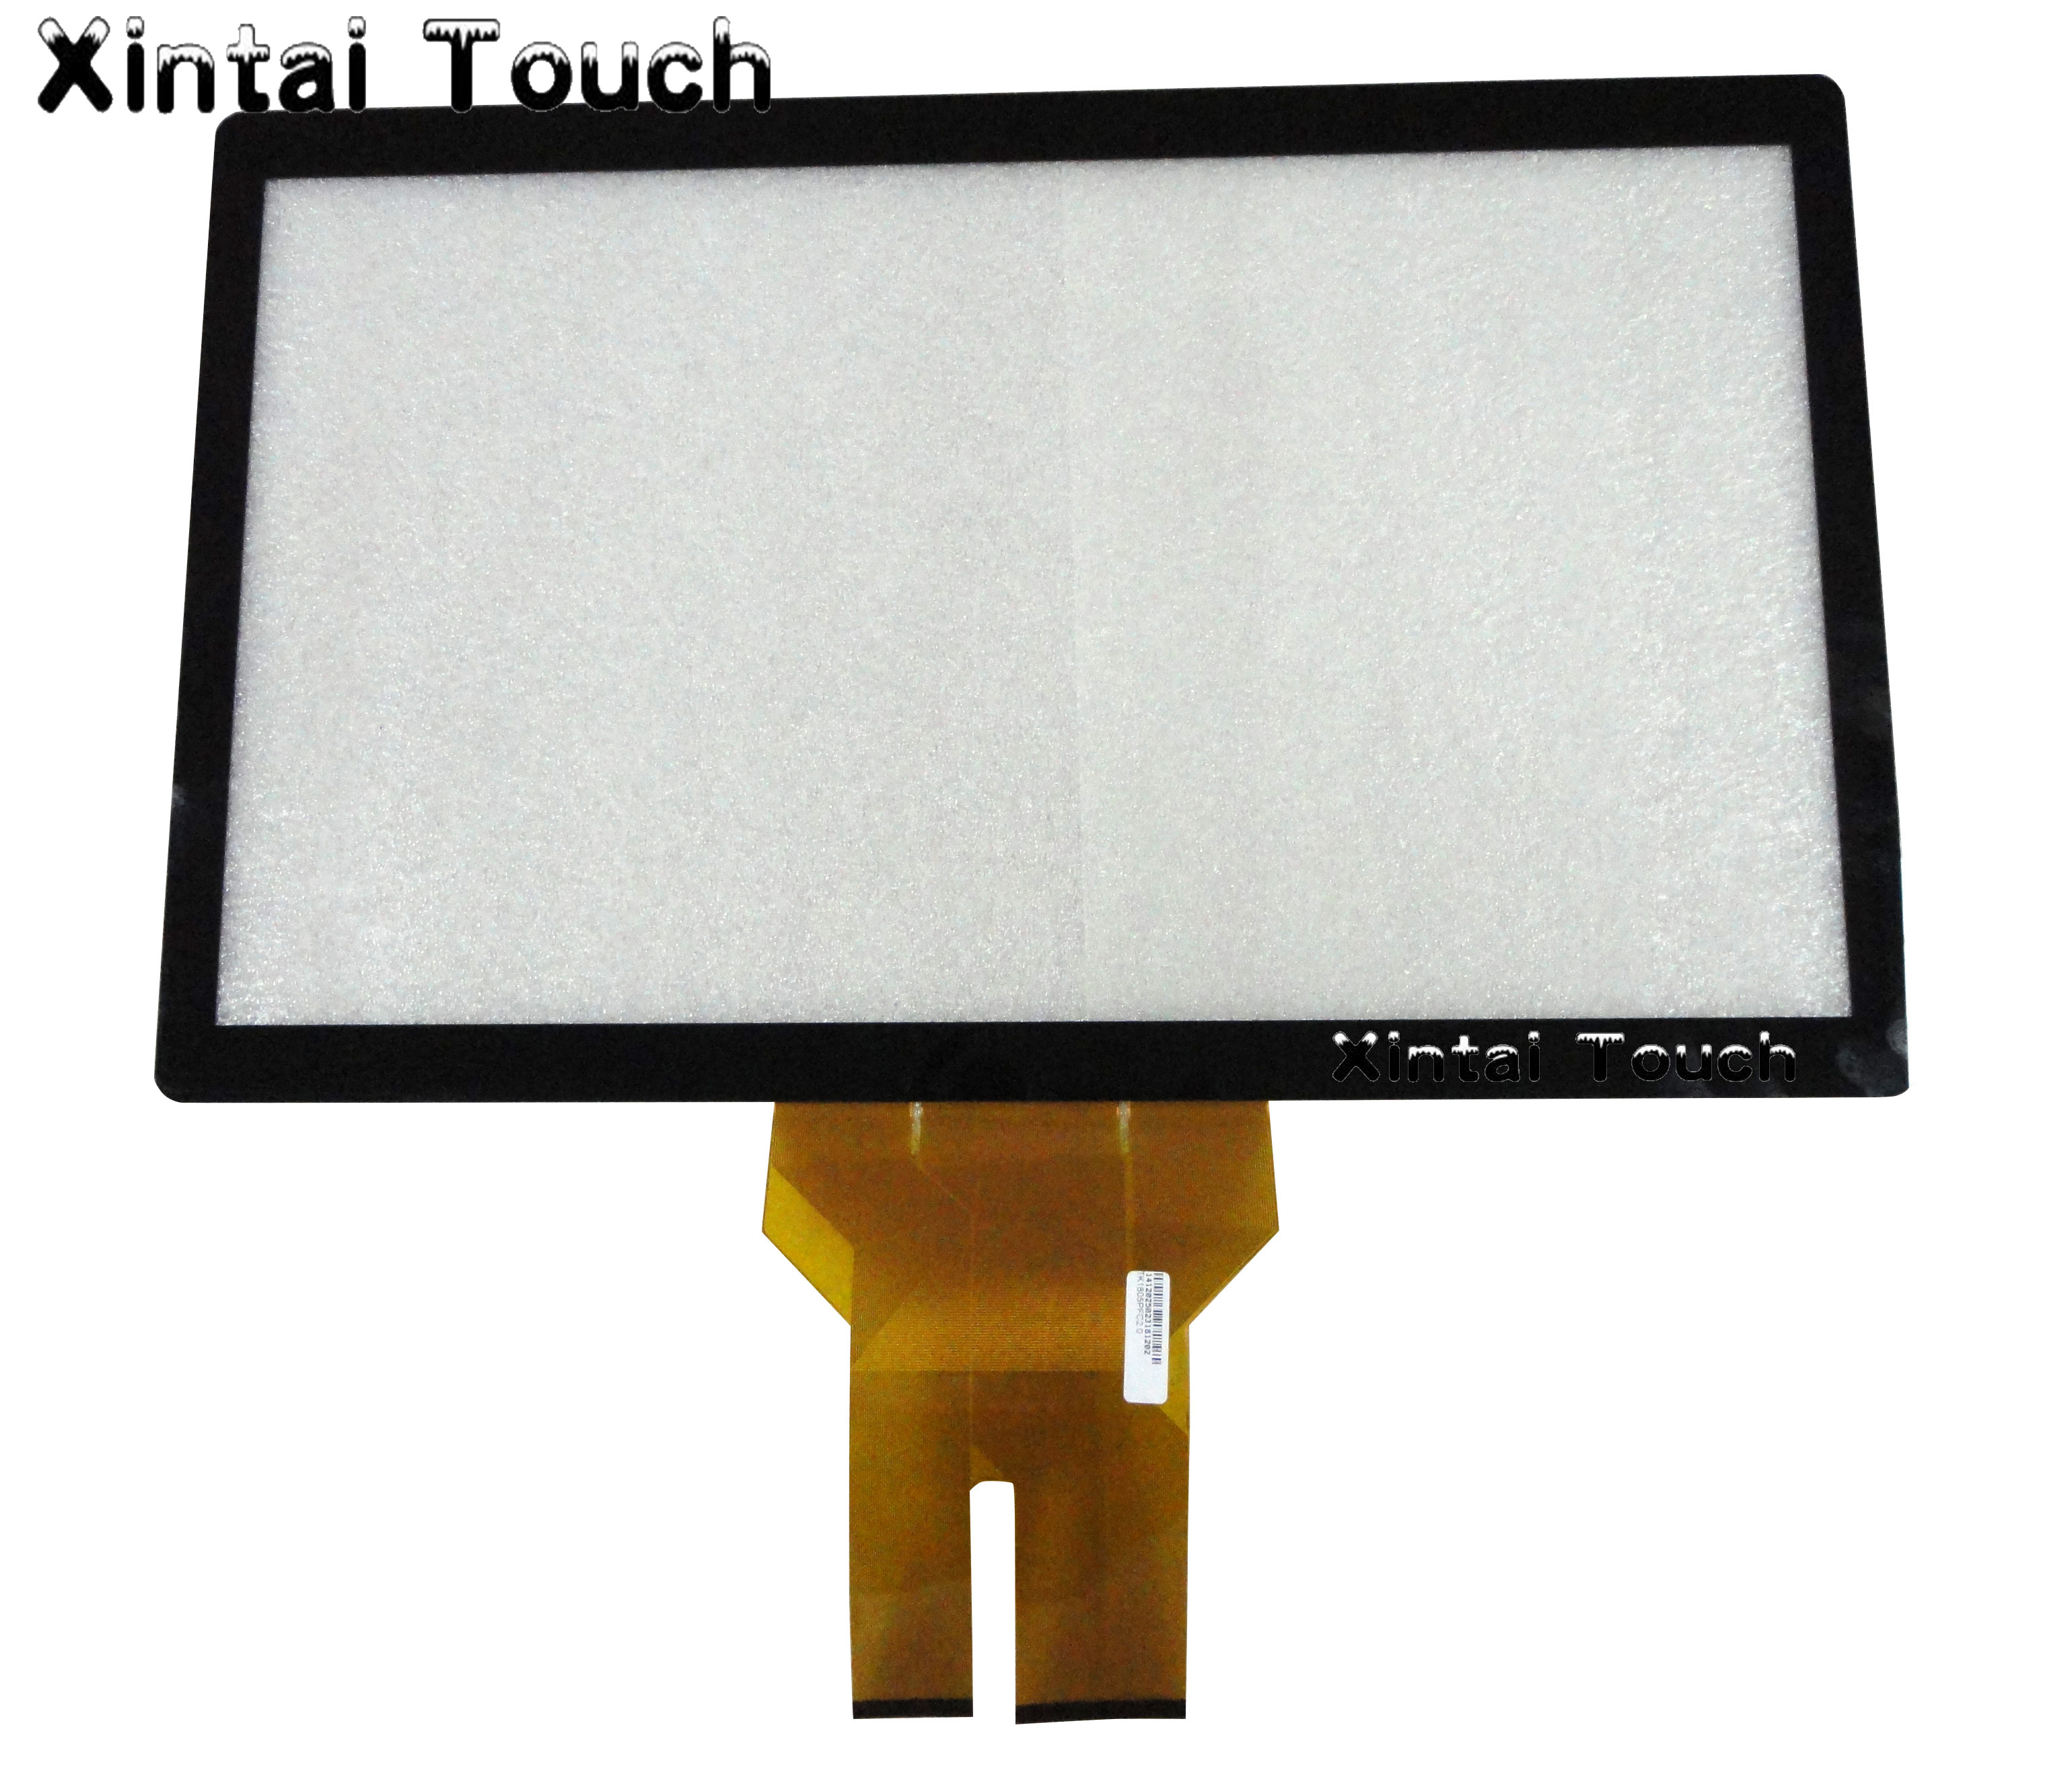 18.5 inch cheap Multi capacitive touch screen with glass/ capacitive touch screen overlay panel kit for touch table, kiosk etc for gt1165 vnba c for touch panel touch screen mitsubishi cheap